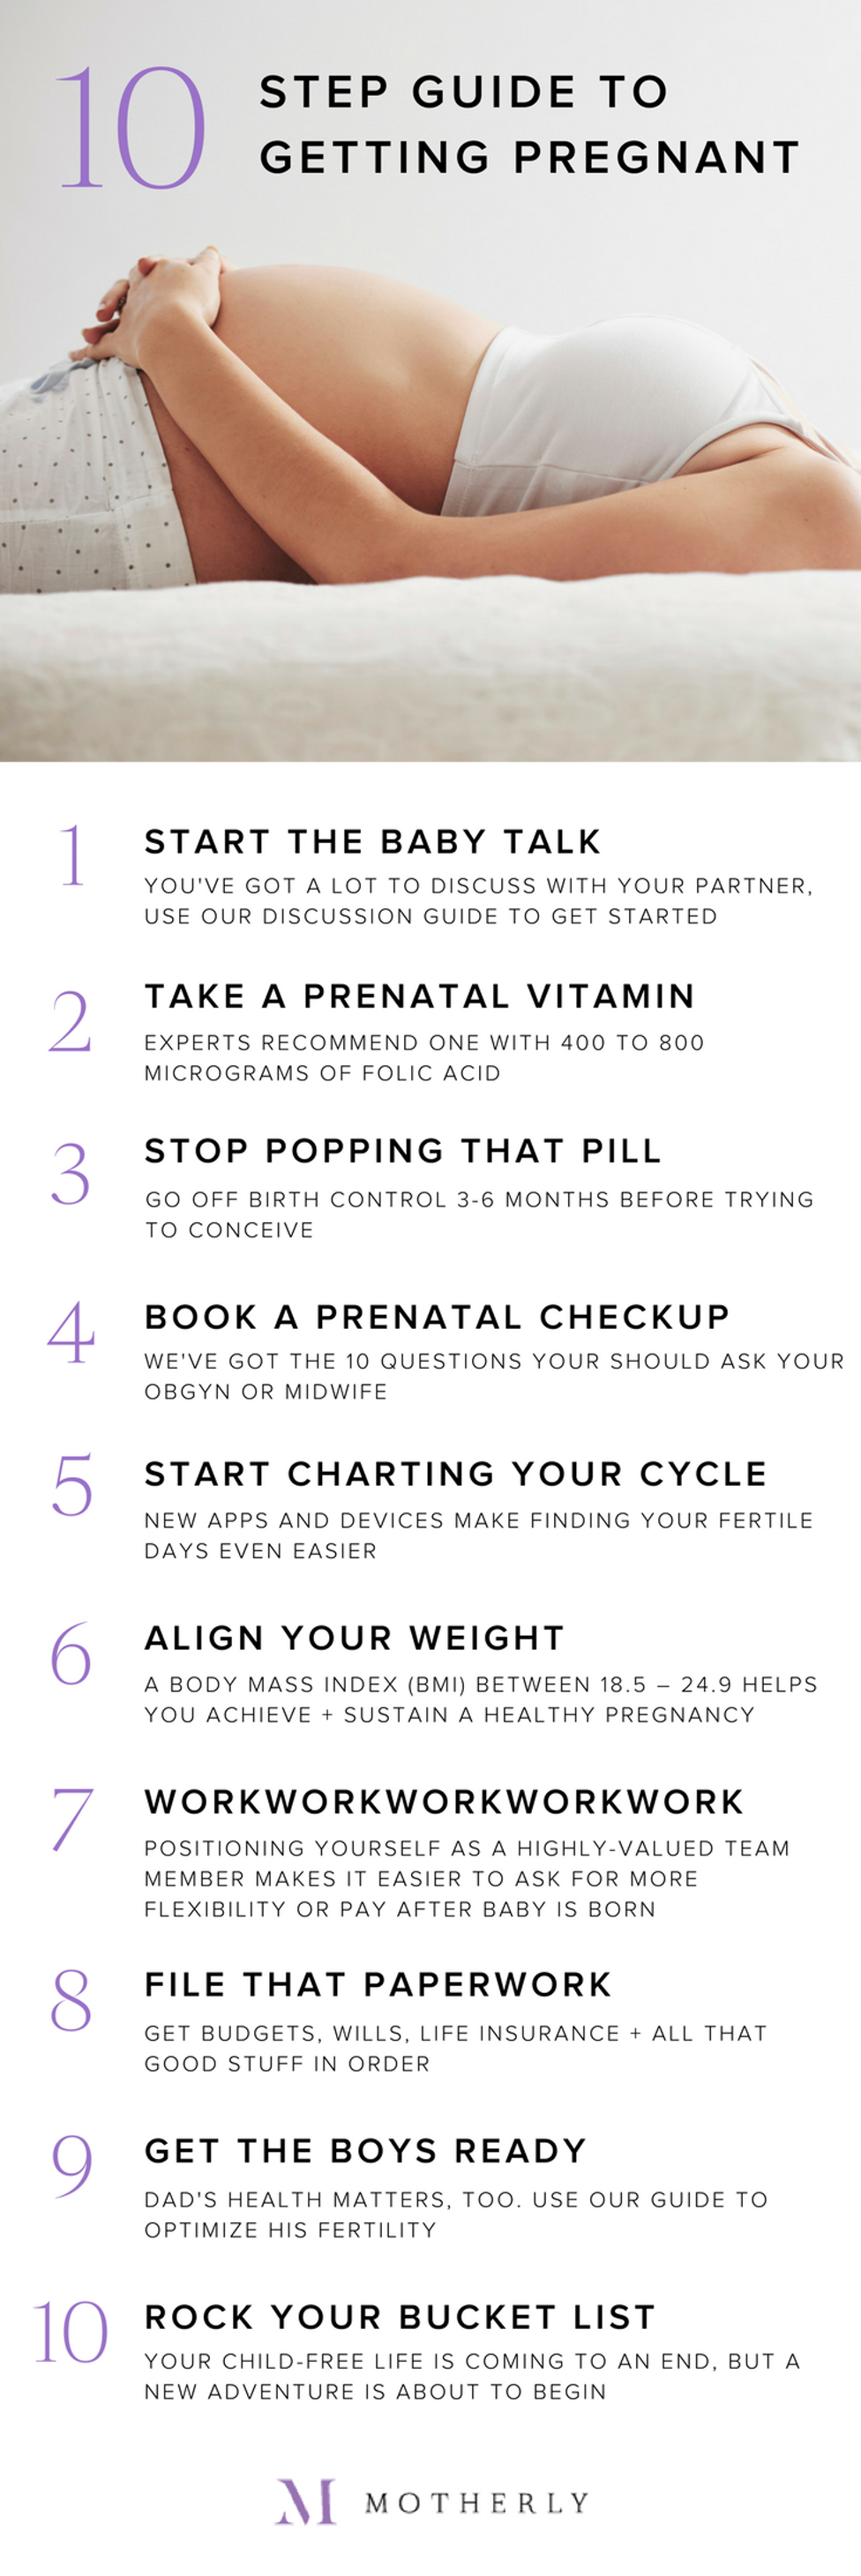 How To Get Pregnant Quickly After Coming Off The Pill